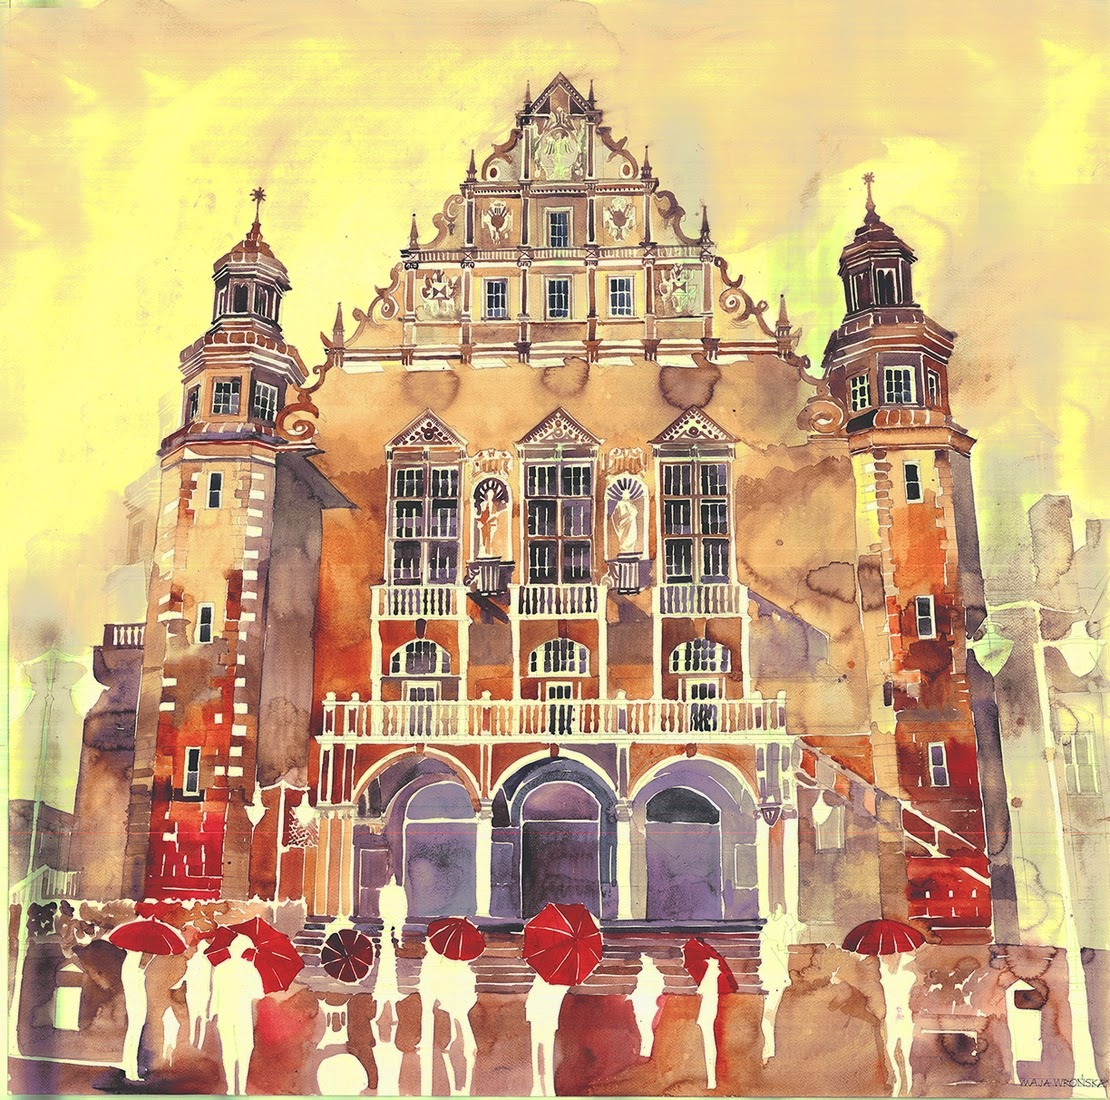 15-Maja-Wrońska-Architectural-Paintings-and-Drawing-Sketces-www-designstack-co